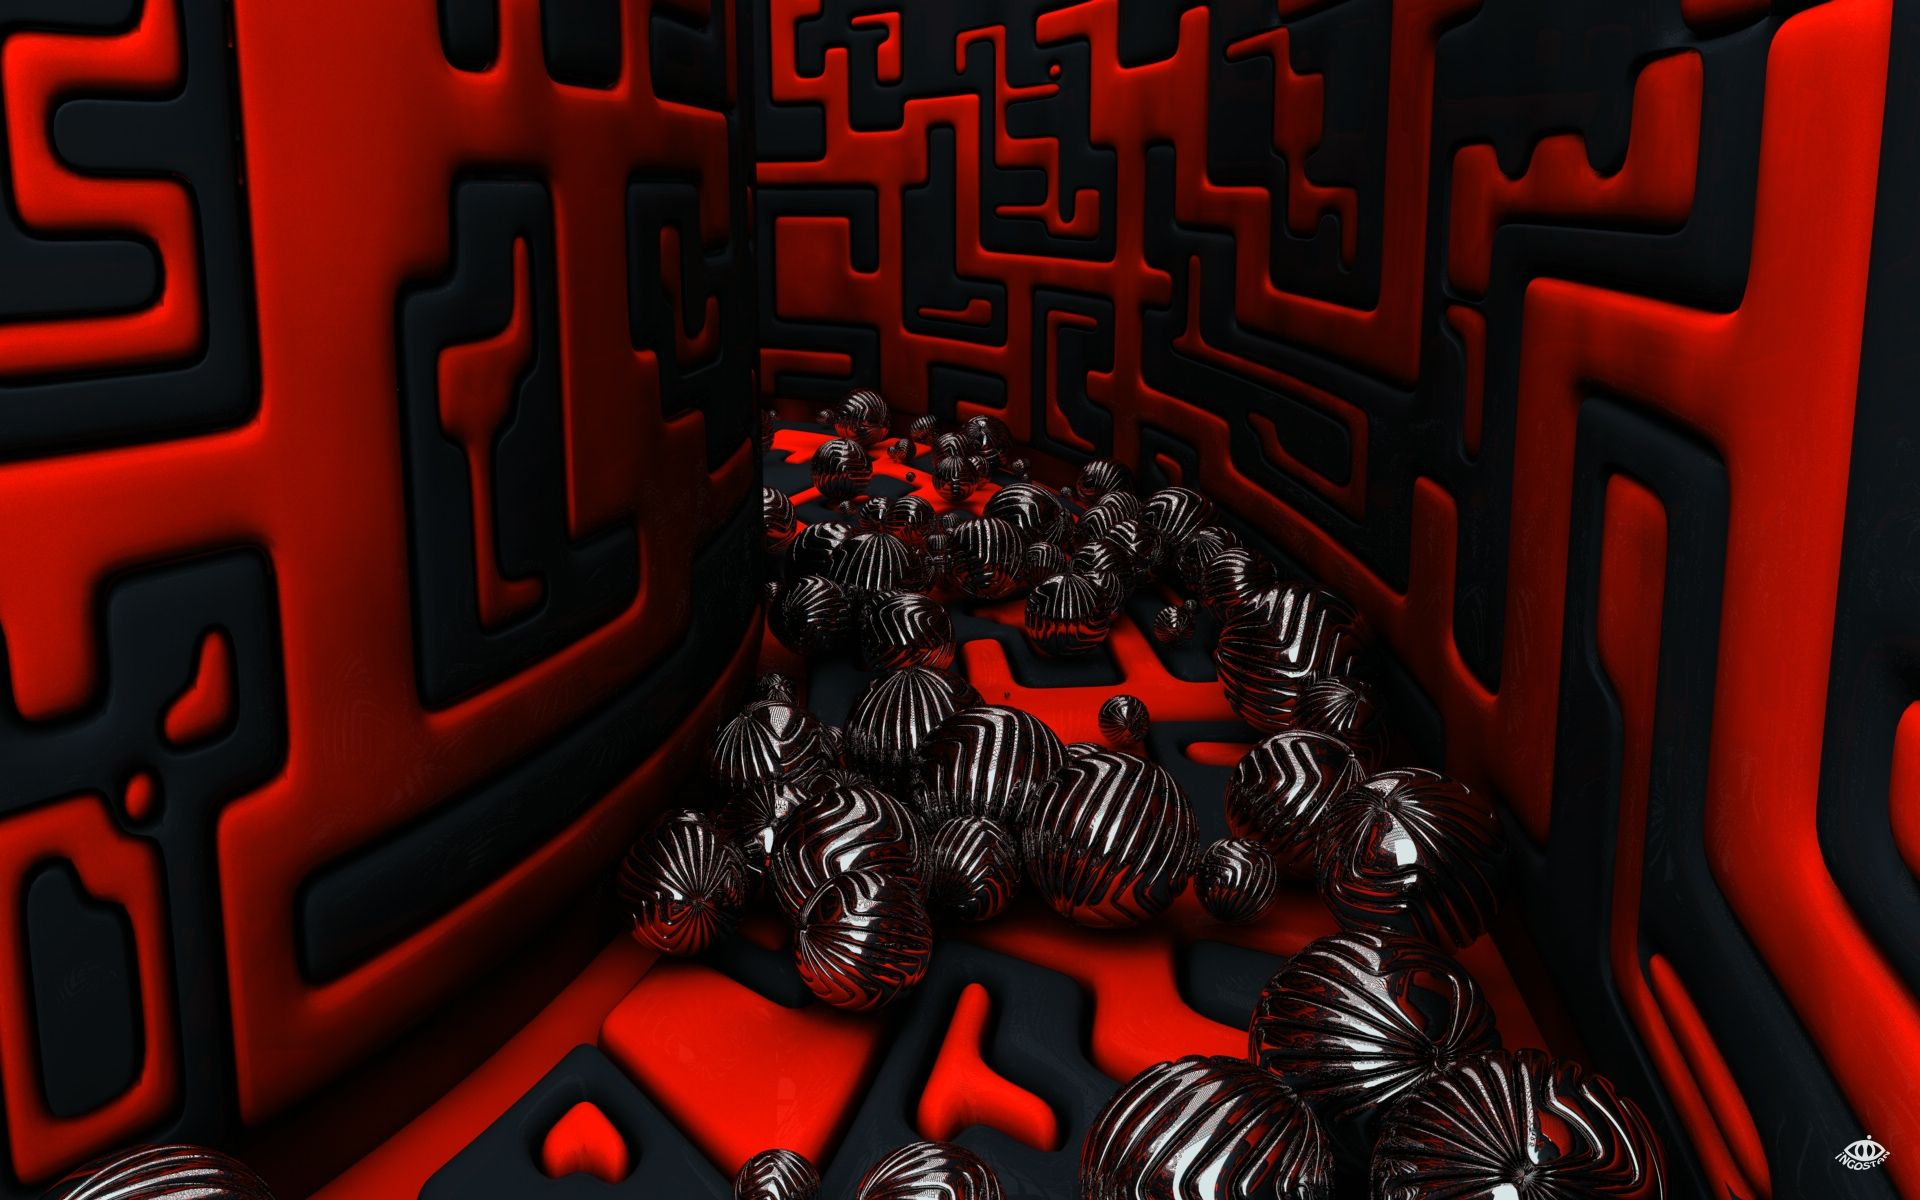 3d Red Black Spheres Hd Widescreen Desktop Wallpaper Red Wallpaper Red And Black Wallpaper Abstract Wallpaper Backgrounds